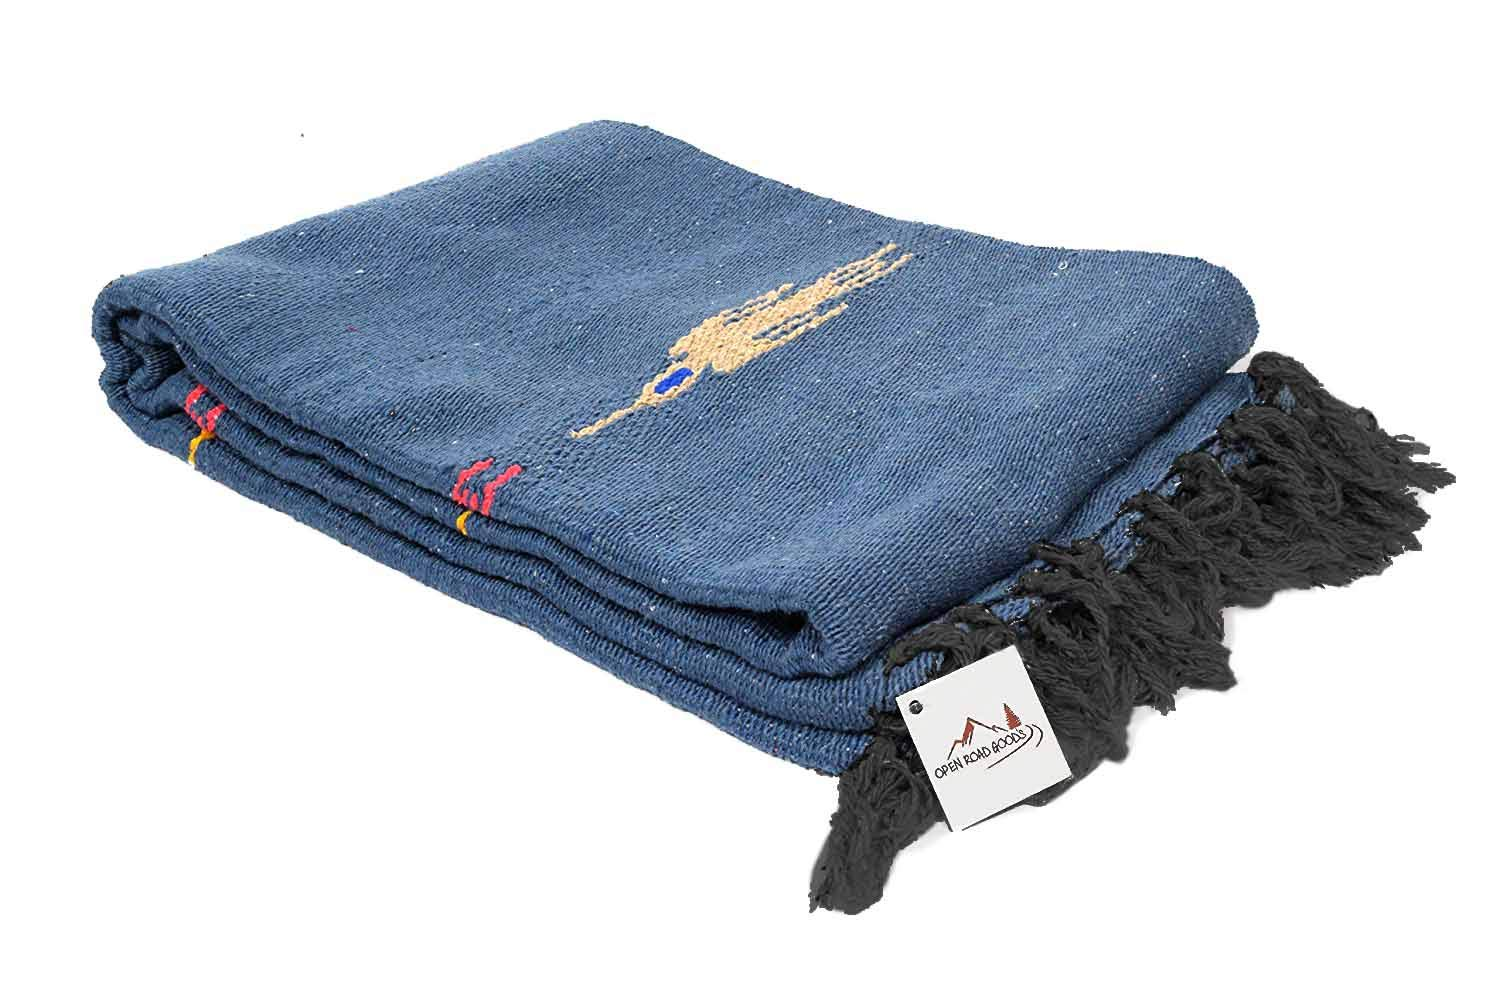 Open Road Goods Slate Blue Thunderbird Heavyweight Yoga Blanket or Throw - Made for Yoga!